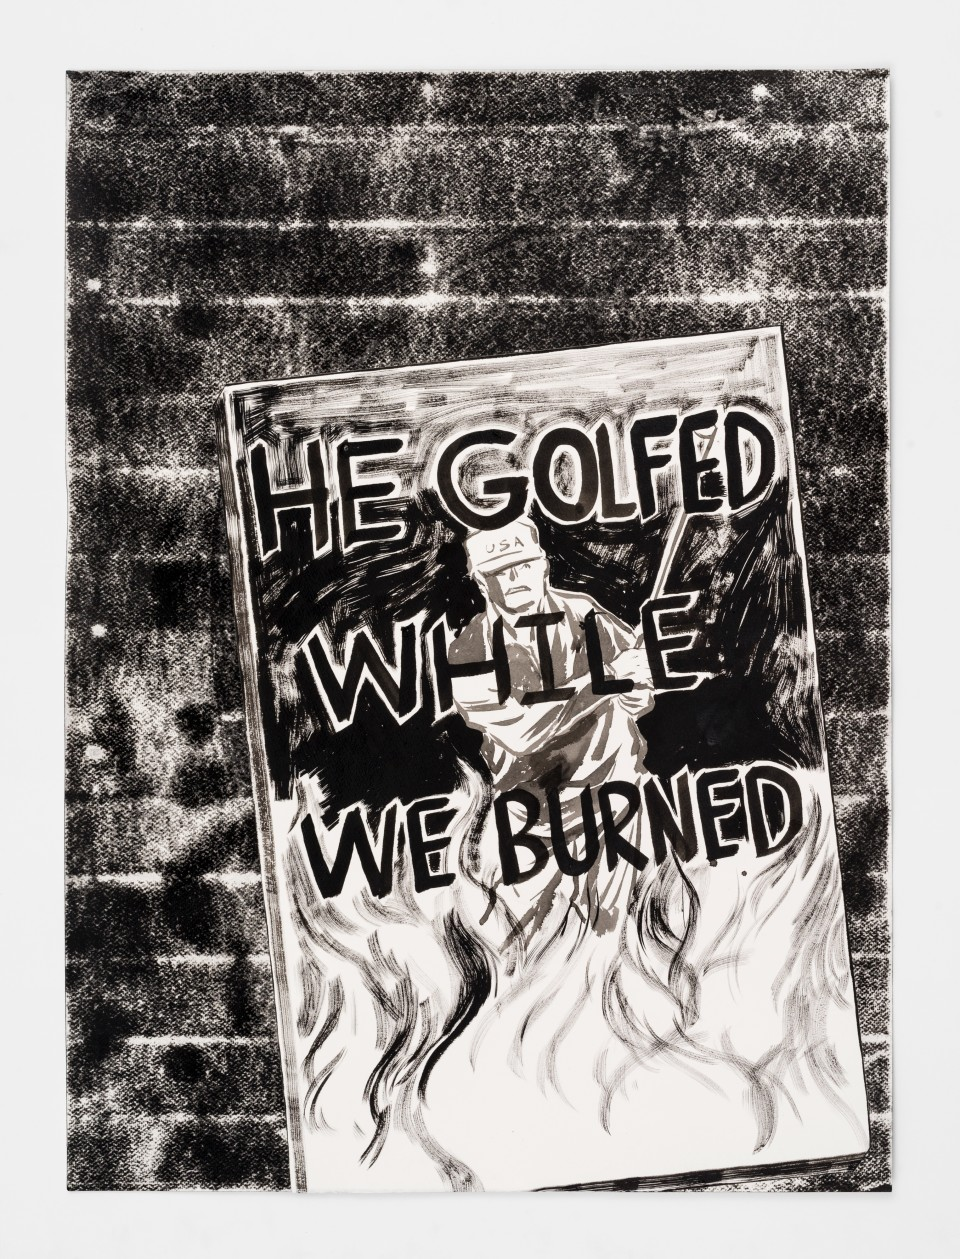 Image: Mark Thomas Gibson  He Golfed While We Burned, 2020  ink on paper collage  30 x 22 inches (76.2 x 55.9 cm)